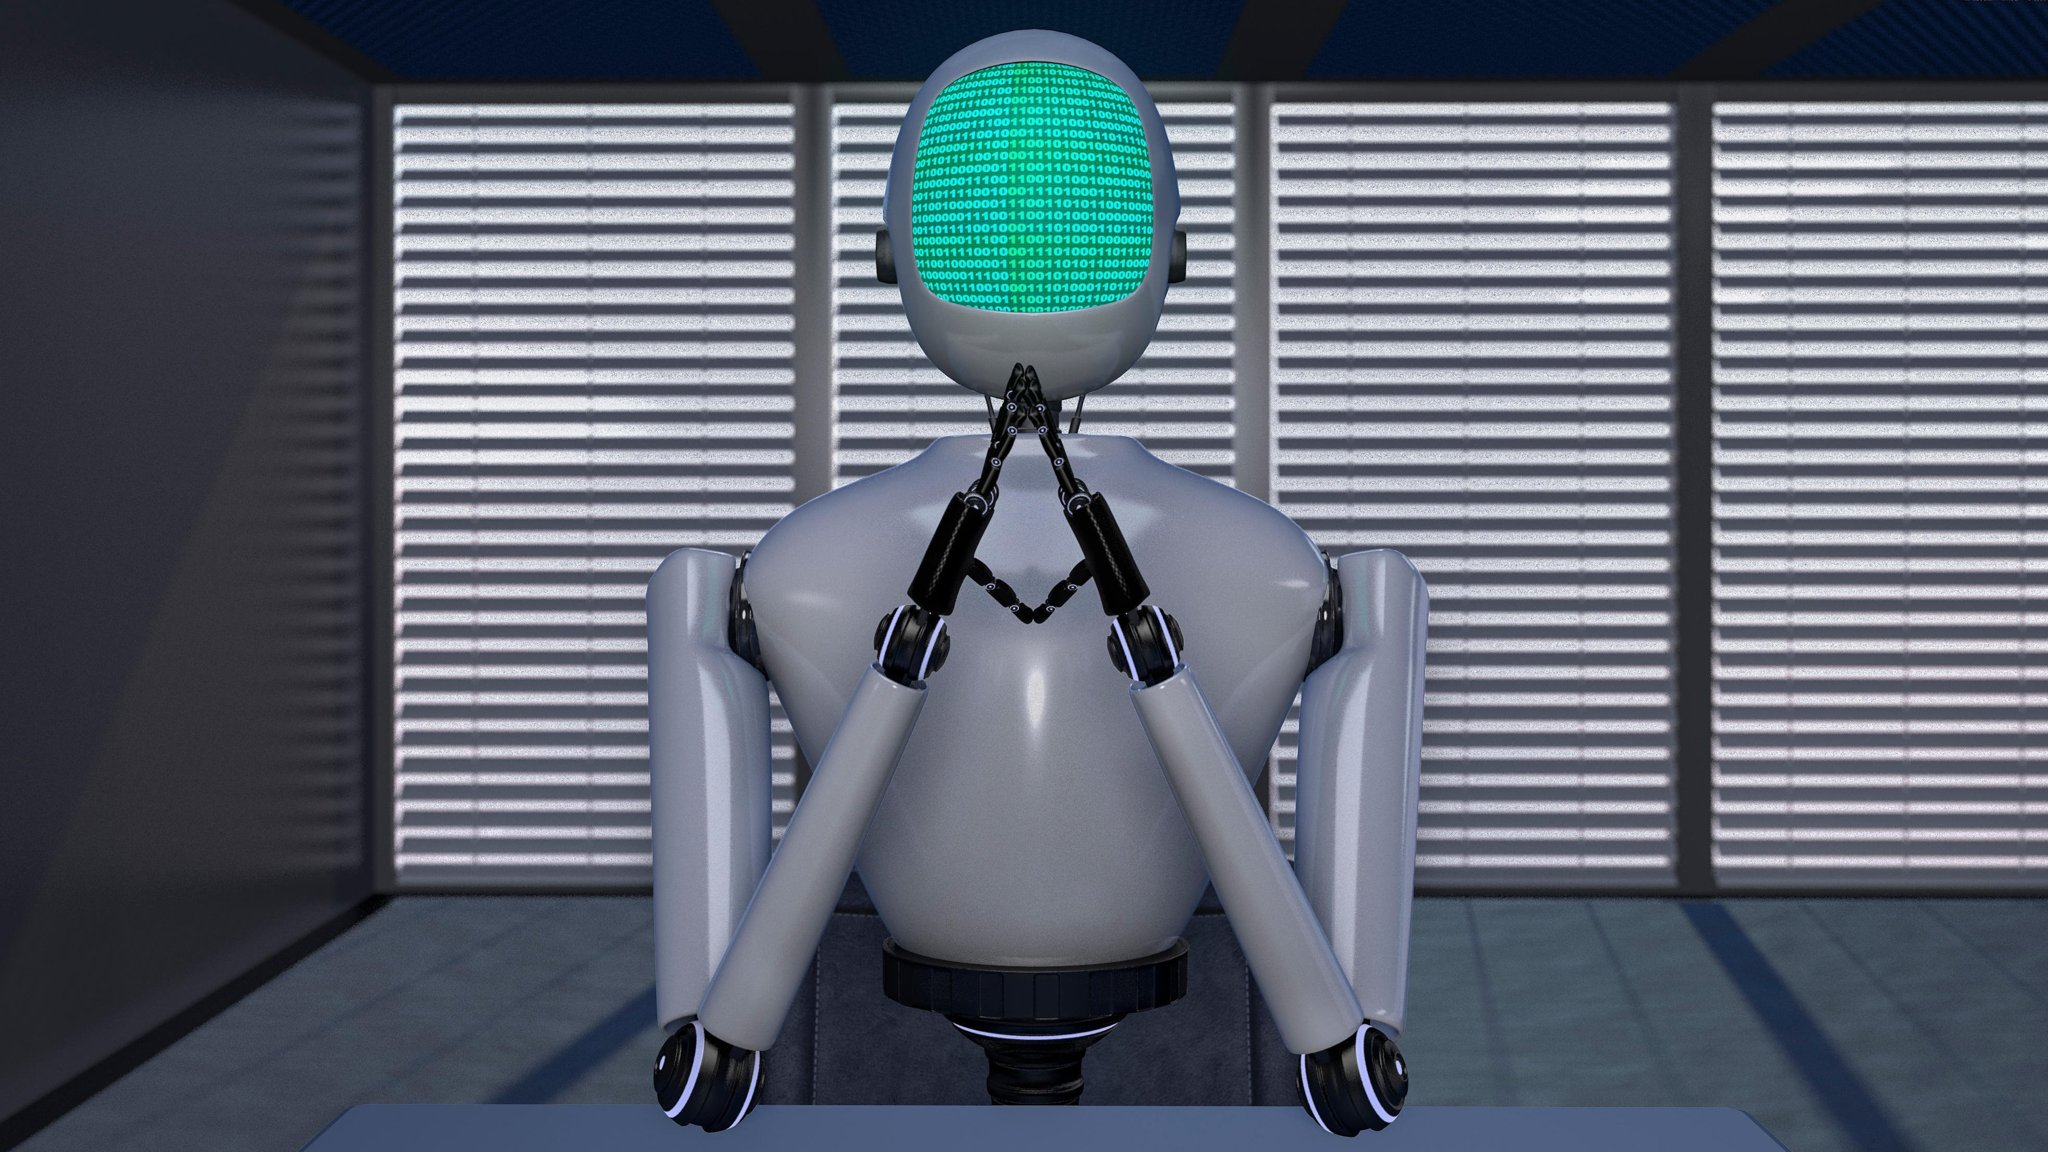 Robots and AI threaten to mediate disputes better than lawyers